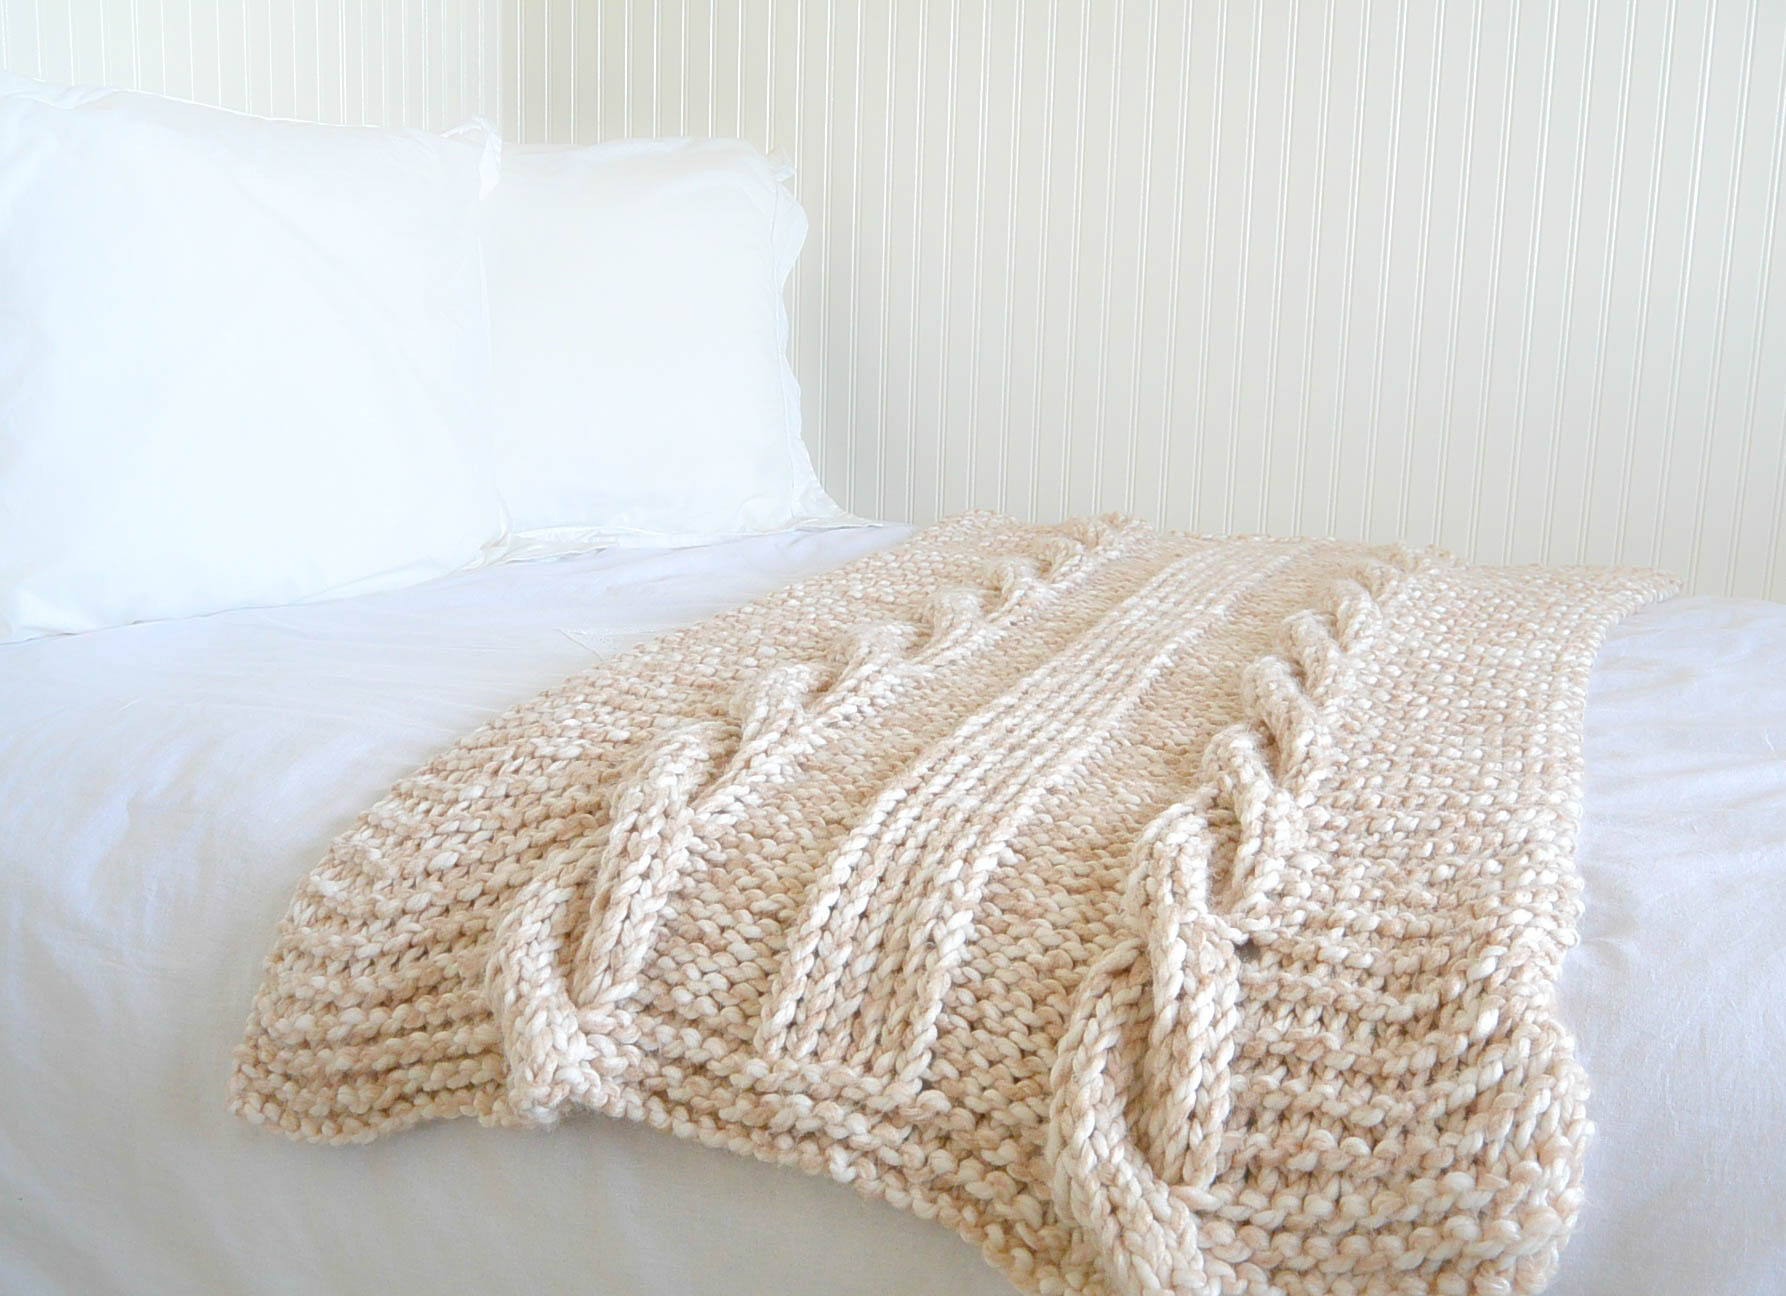 Knitting Cable Patterns Free : Endless Cables Chunky Knit Throw Pattern   Mama In A Stitch